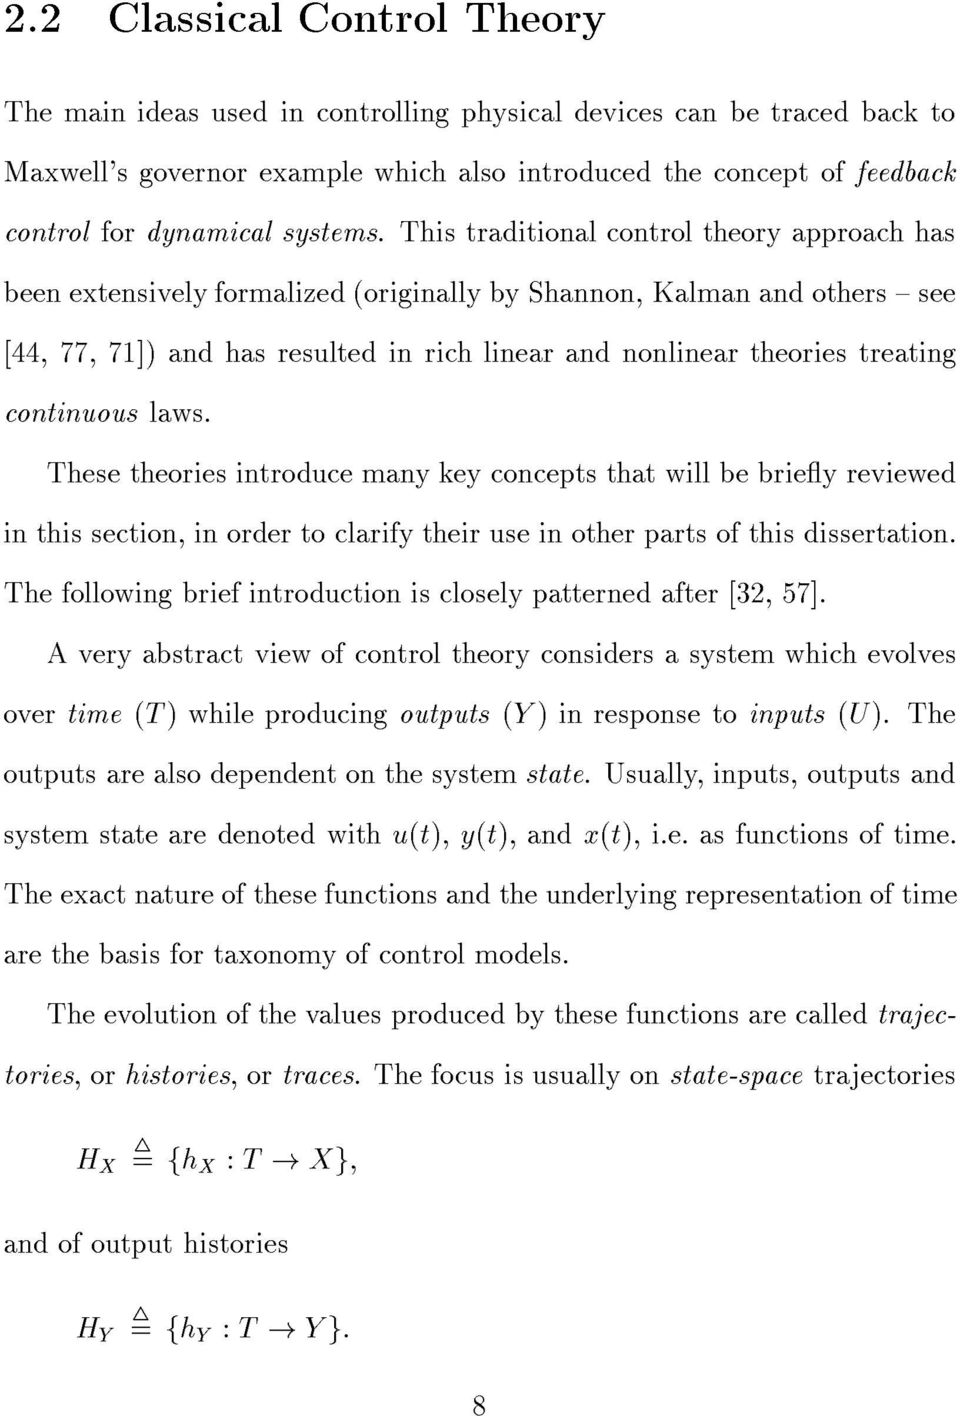 This traditional control theory approach has been extensively formalized èoriginally by Shannon, Kalman and others í see ë44, 77, 71ëè and has resulted in rich linear and nonlinear theories treating